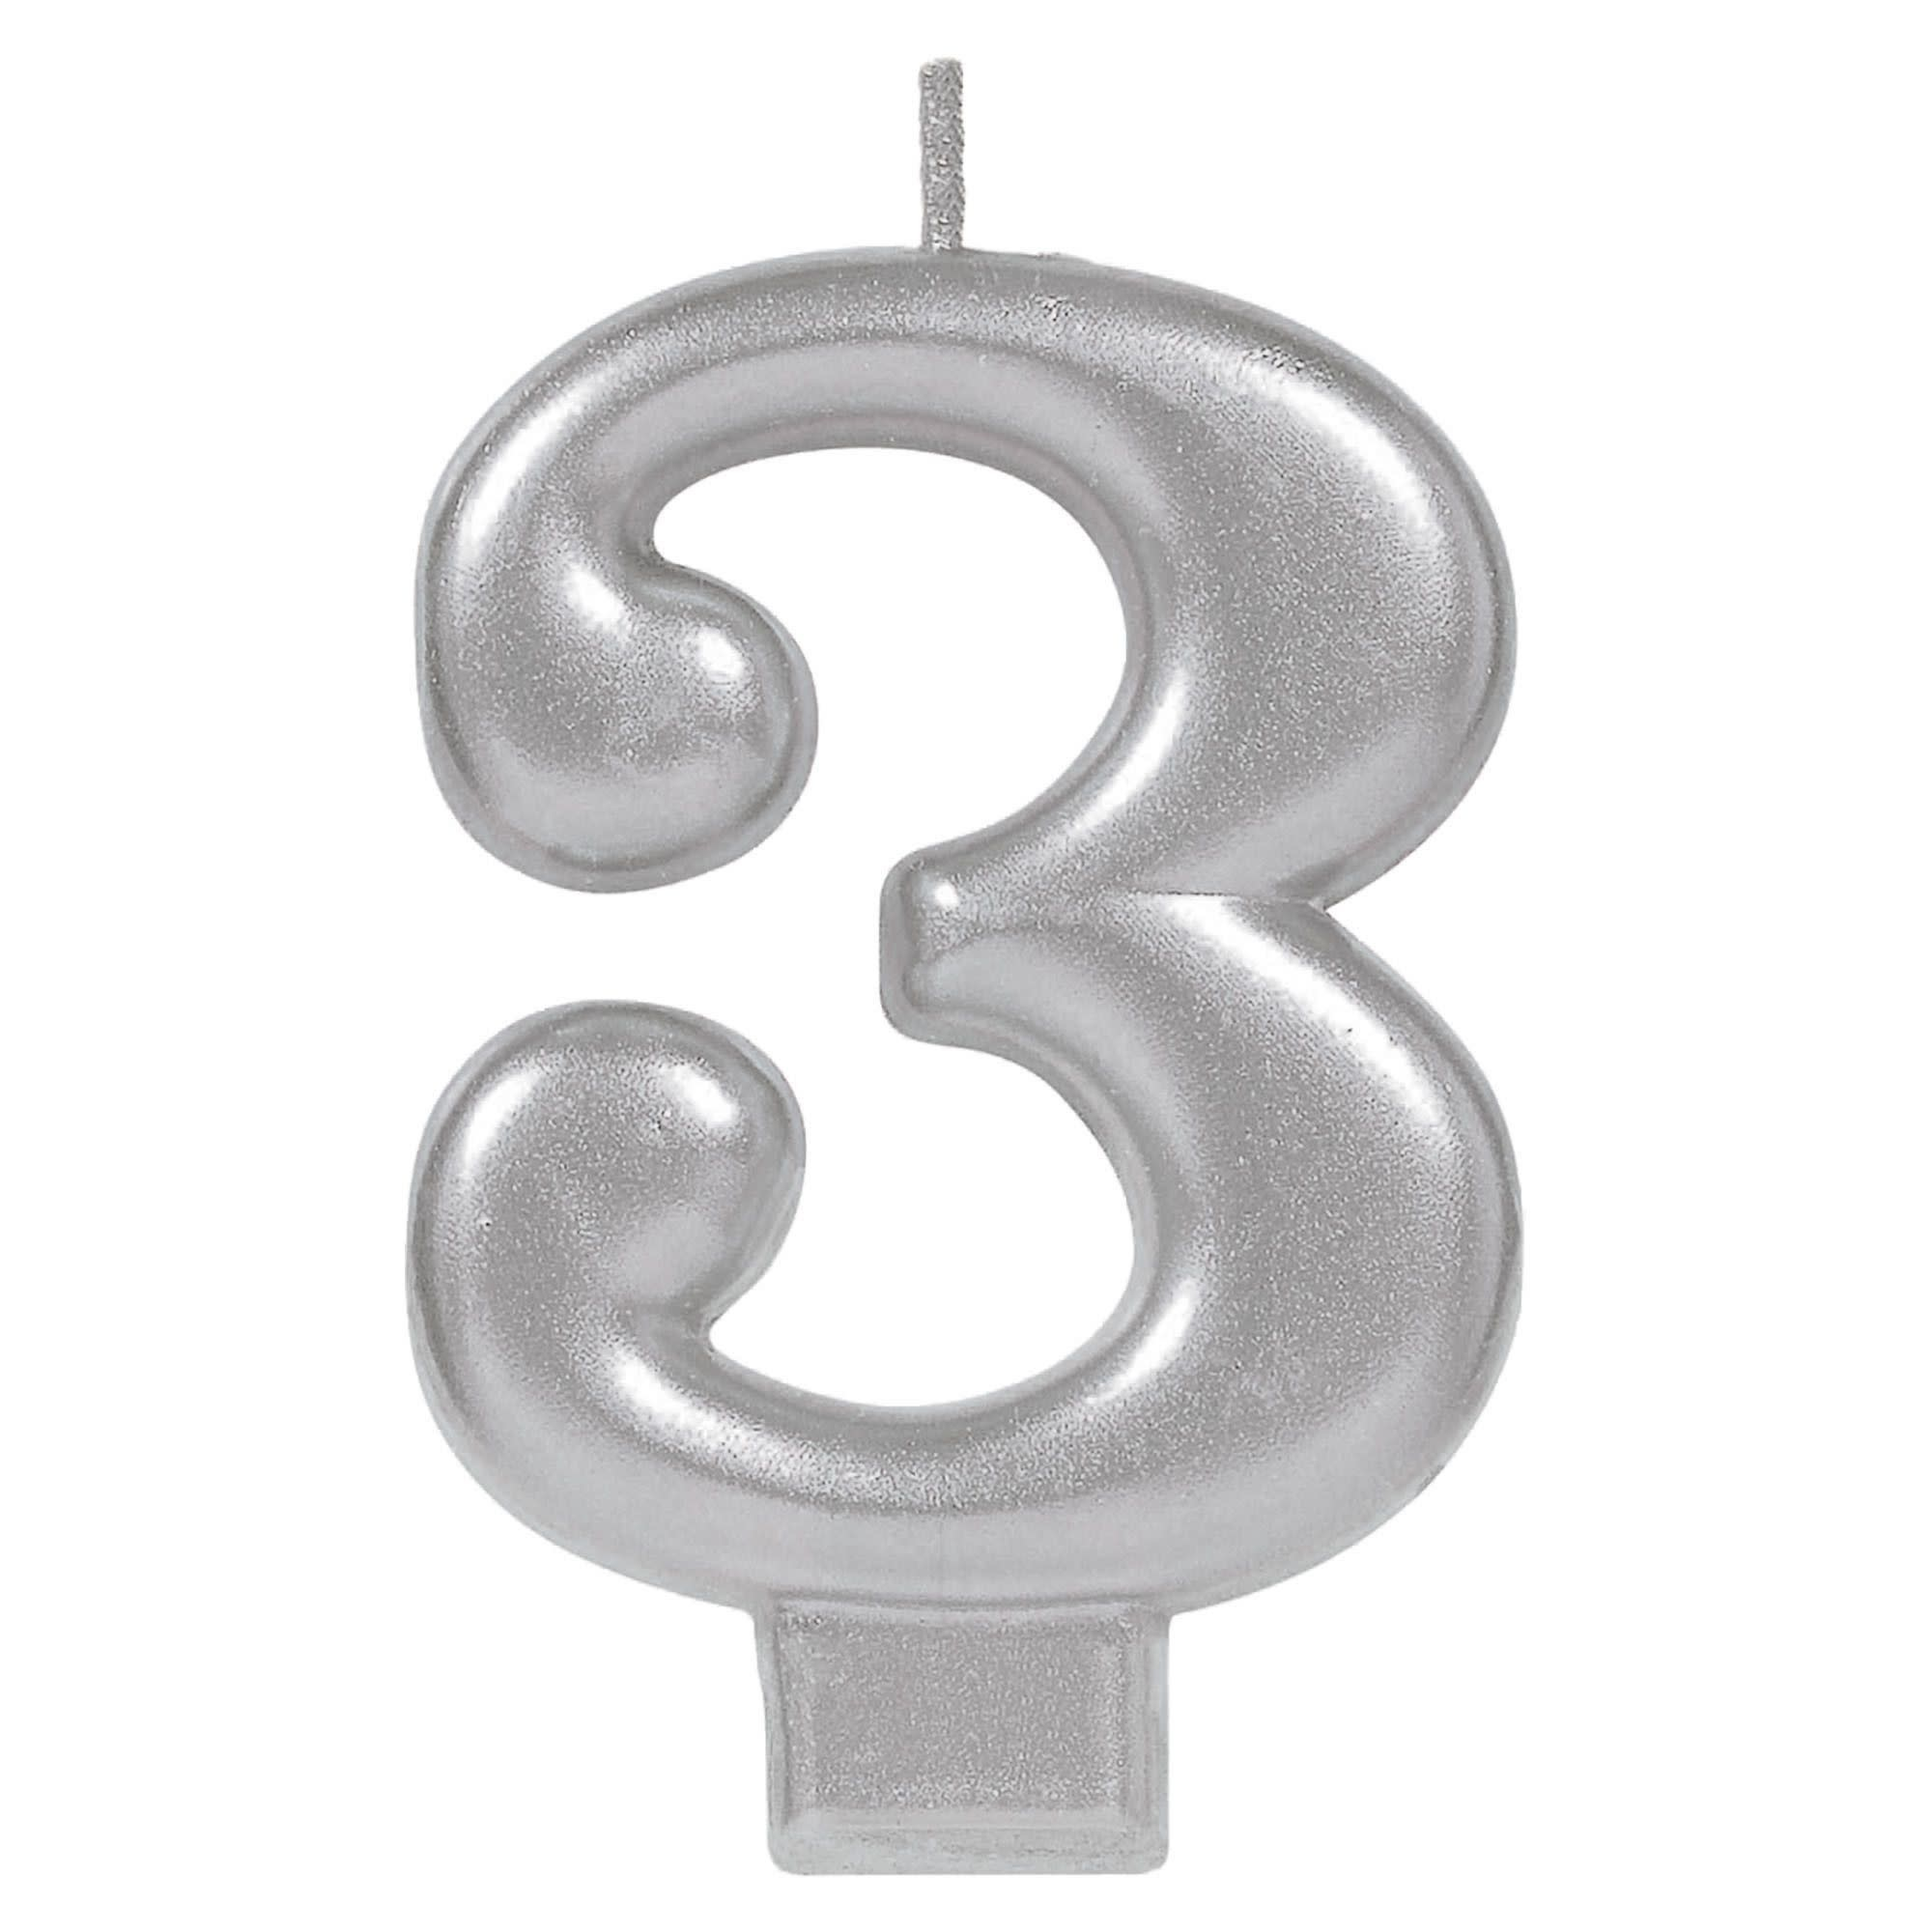 Numeral Metallic Candle #3 - Silver